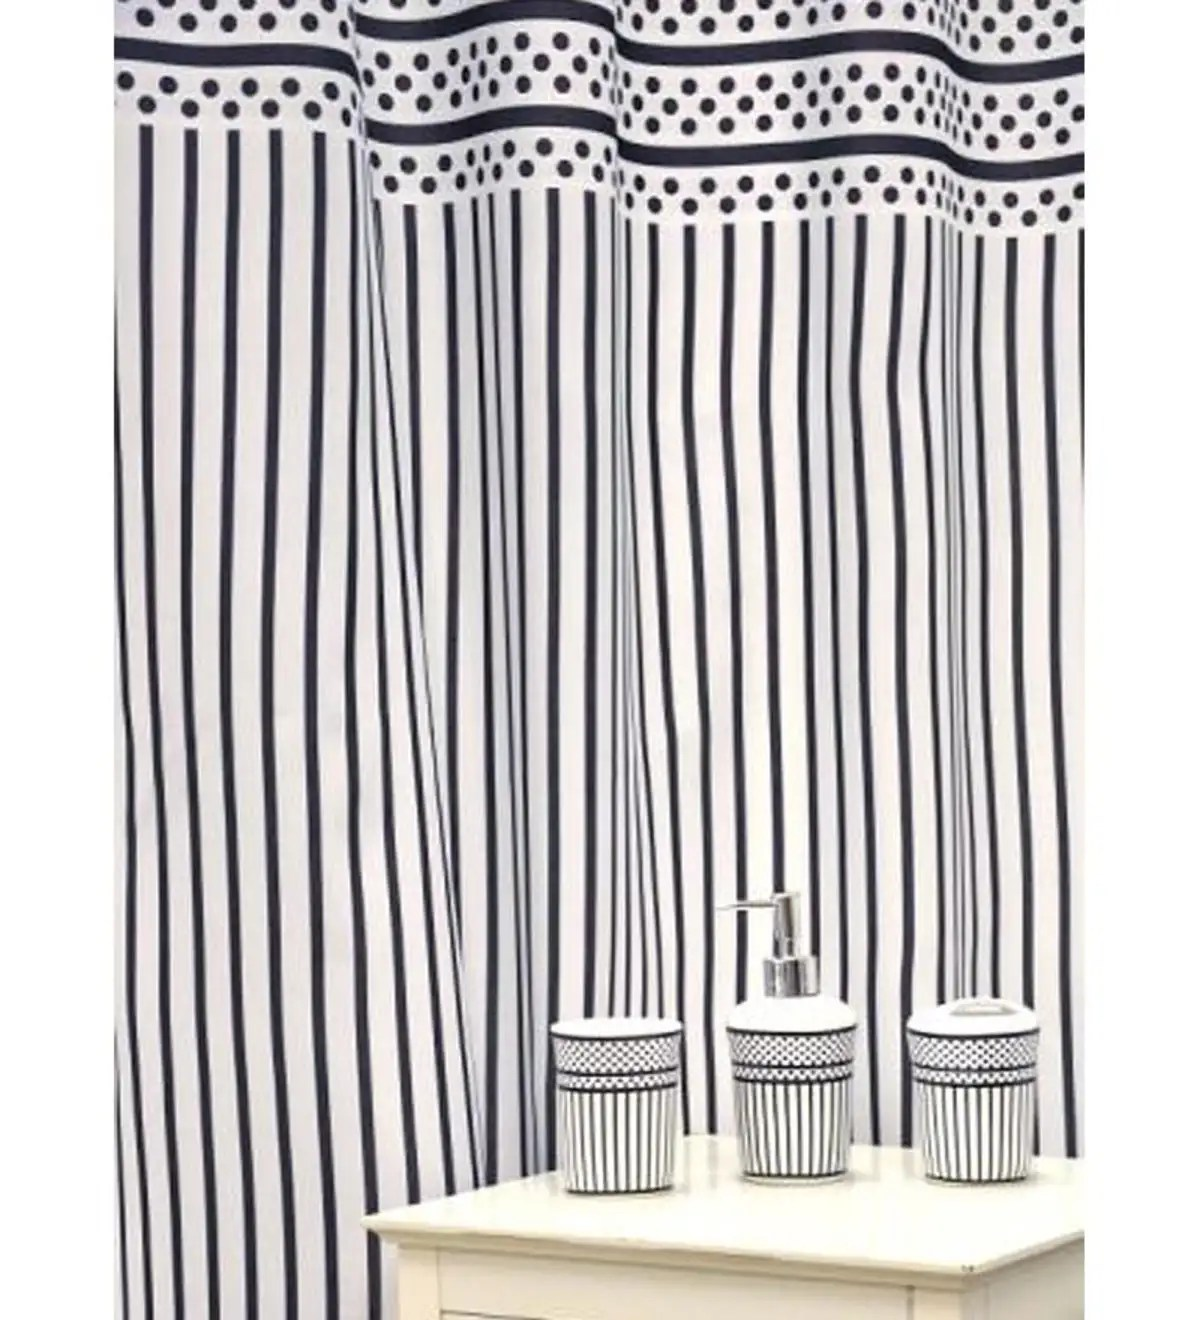 16 Piece Polka Dots And Stripes Shower Curtain And Bath